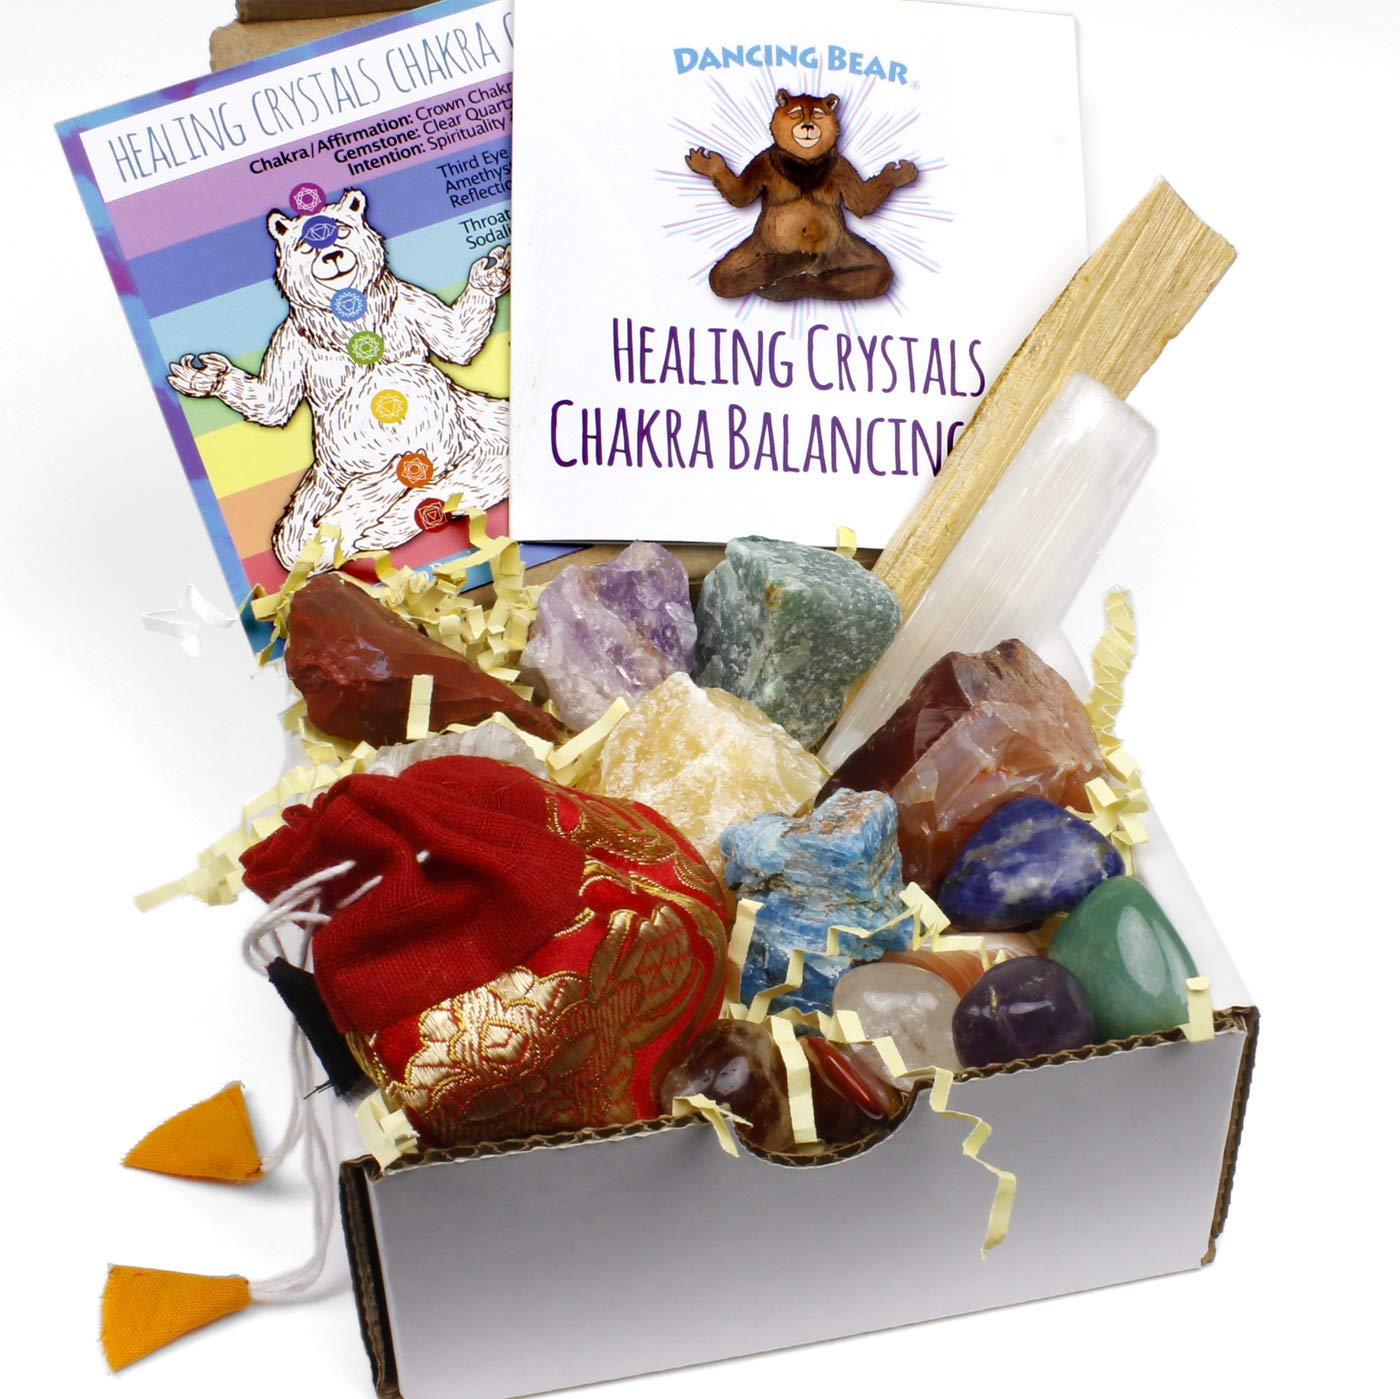 Dancing Bear Healing Crystals Chakra Balance Kit (16 Pc Starter Set), 7 Tumbled Stones, 7 Rough Stones, Selenite Wand & Palo Santo Smudge Stick for Good Energy, Chart and Guide with Metaphysical Info